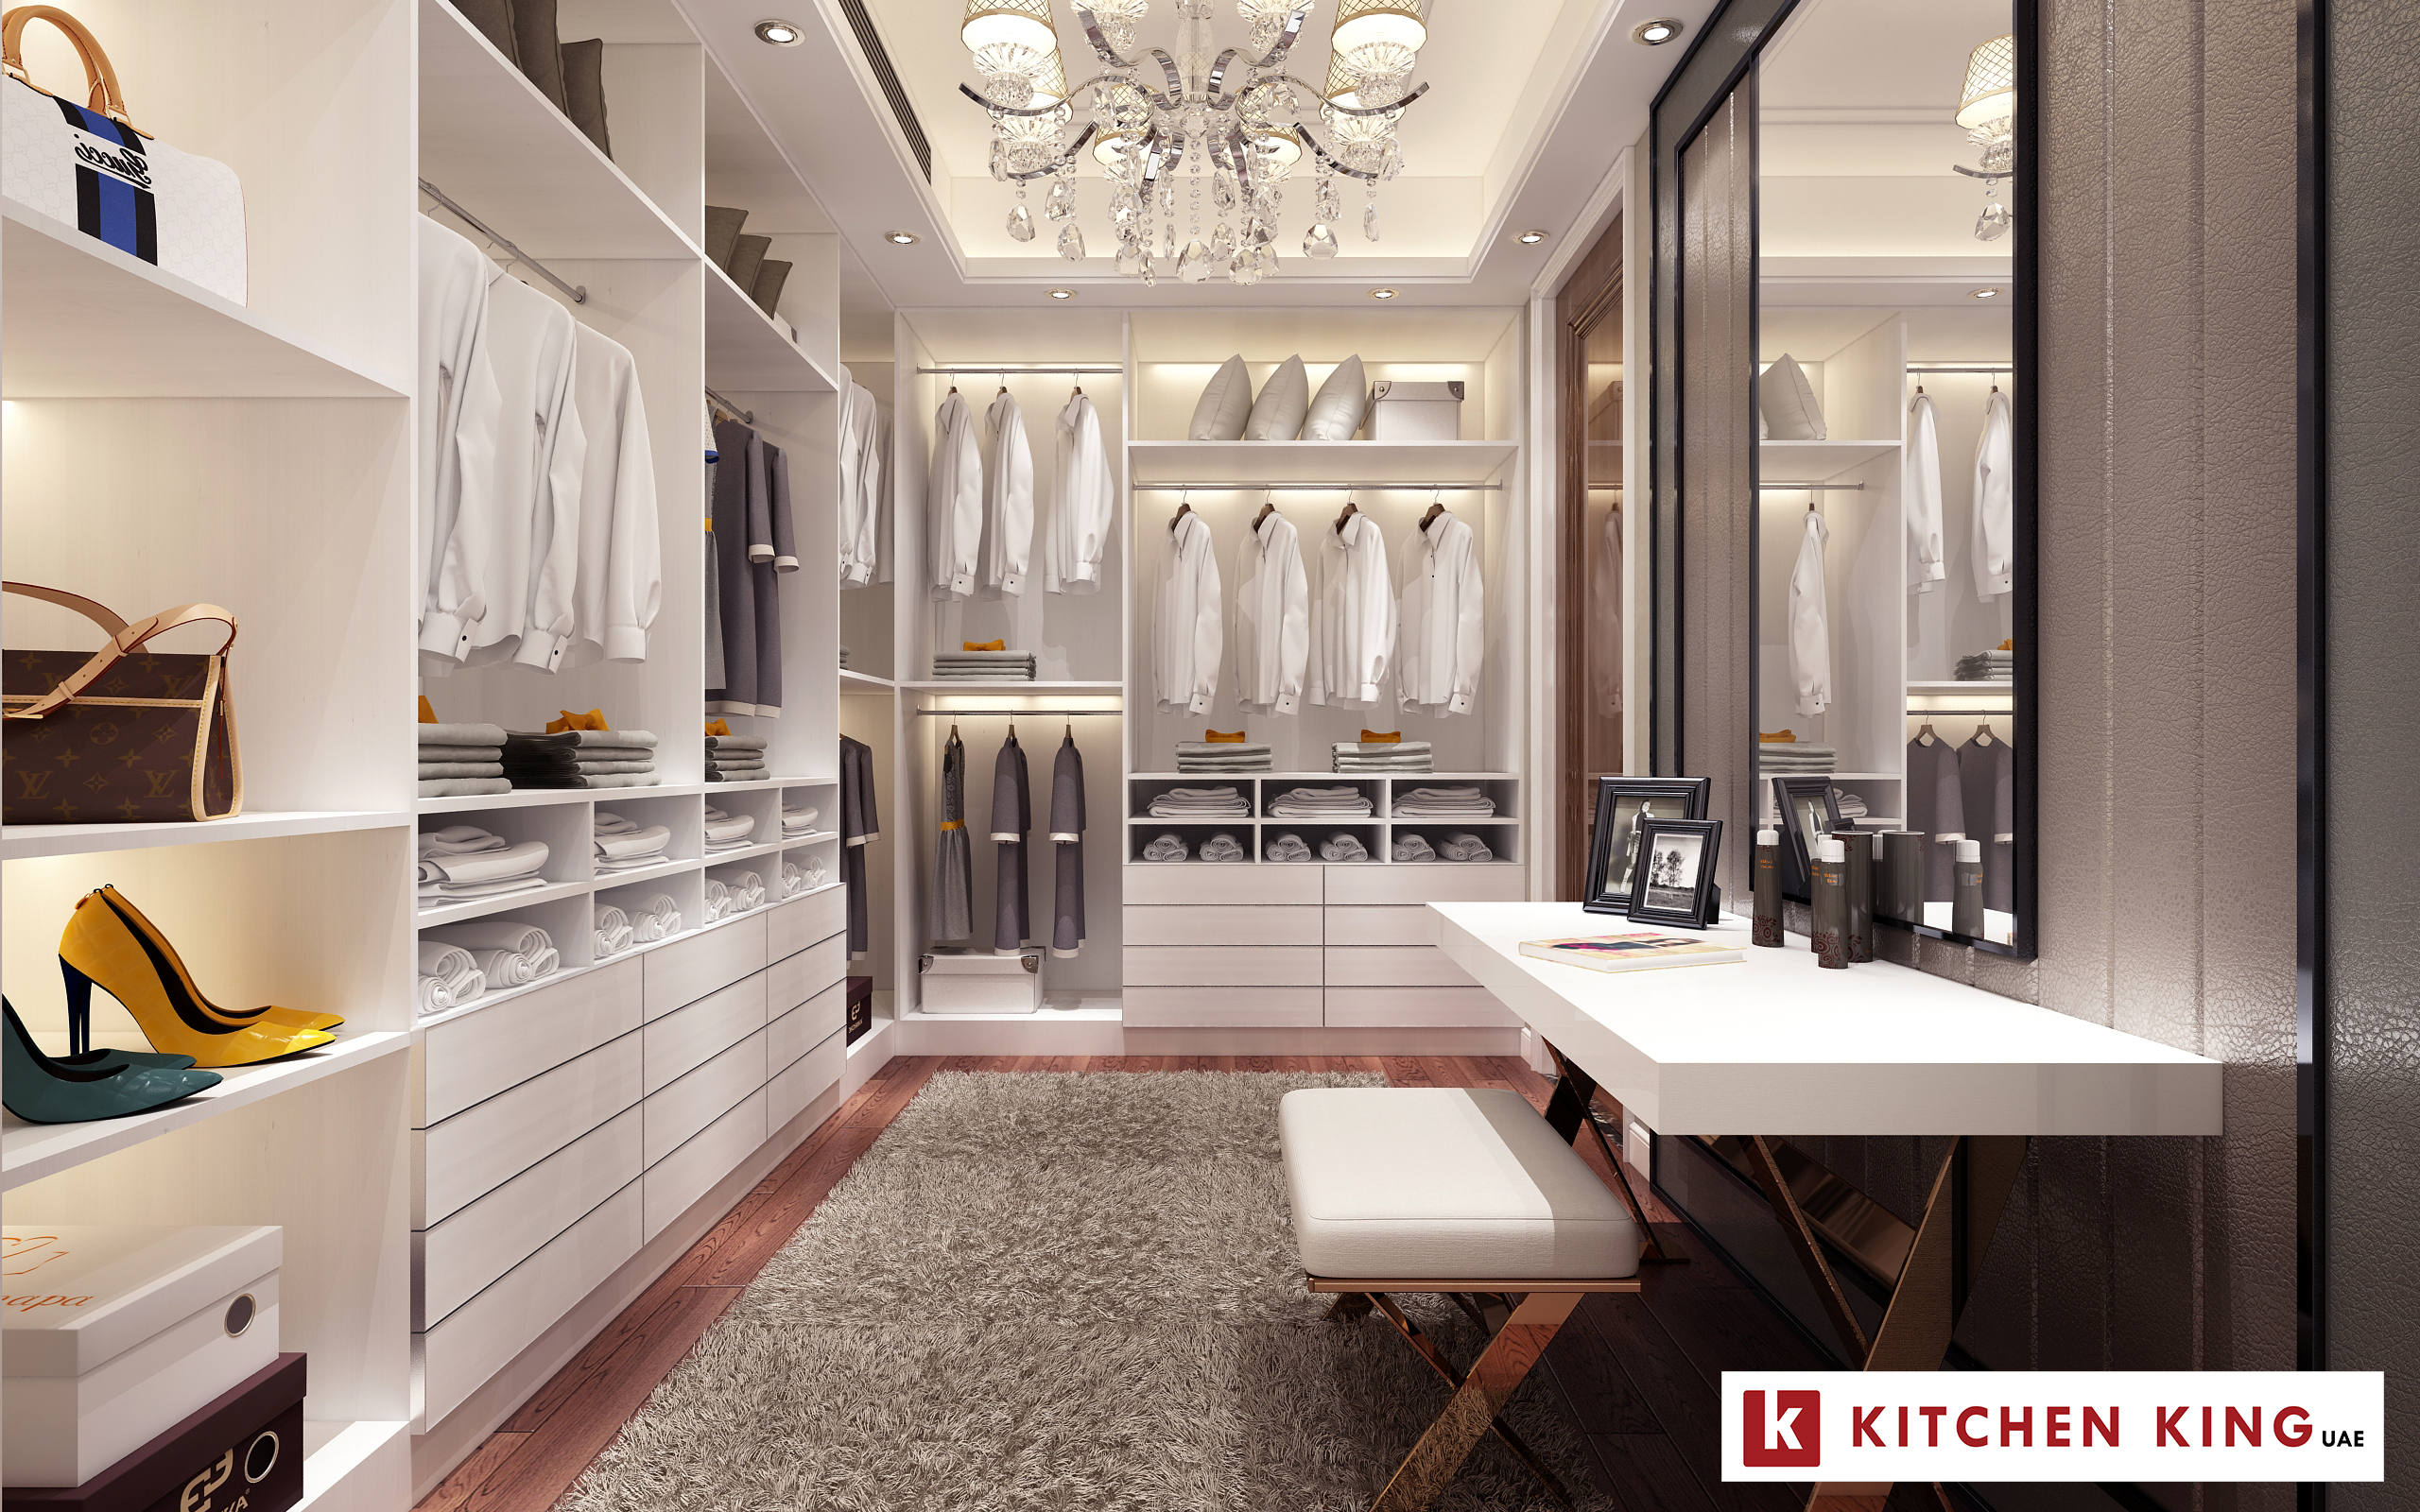 Wardrobe Closet Designs To Fit Your Space In Dubai Uae Kitchen King,Best Interior Designers Los Angeles